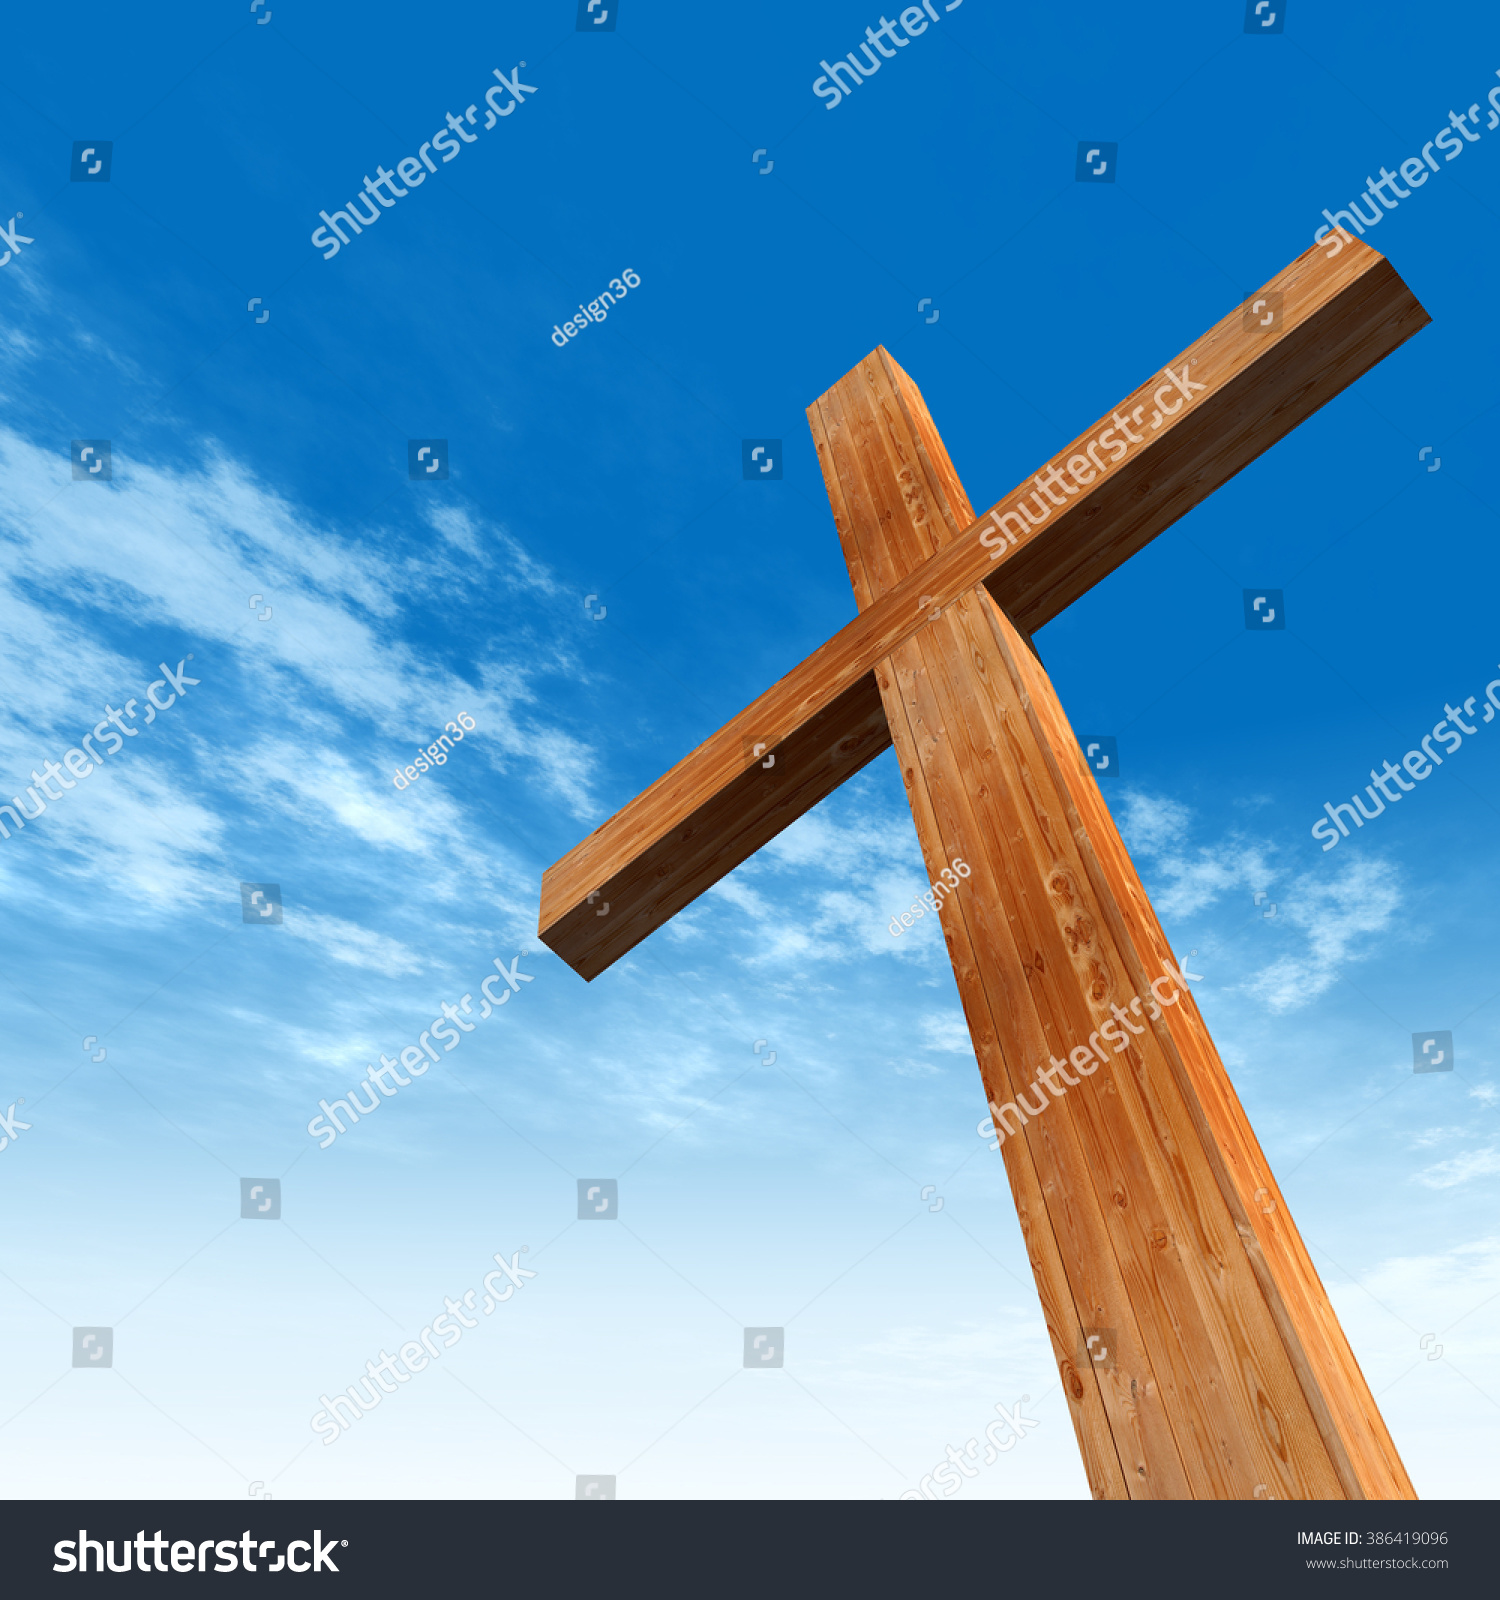 Concept conceptual wood cross religion symbol stock illustration concept or conceptual wood cross or religion symbol shape over a blue sky with clouds background buycottarizona